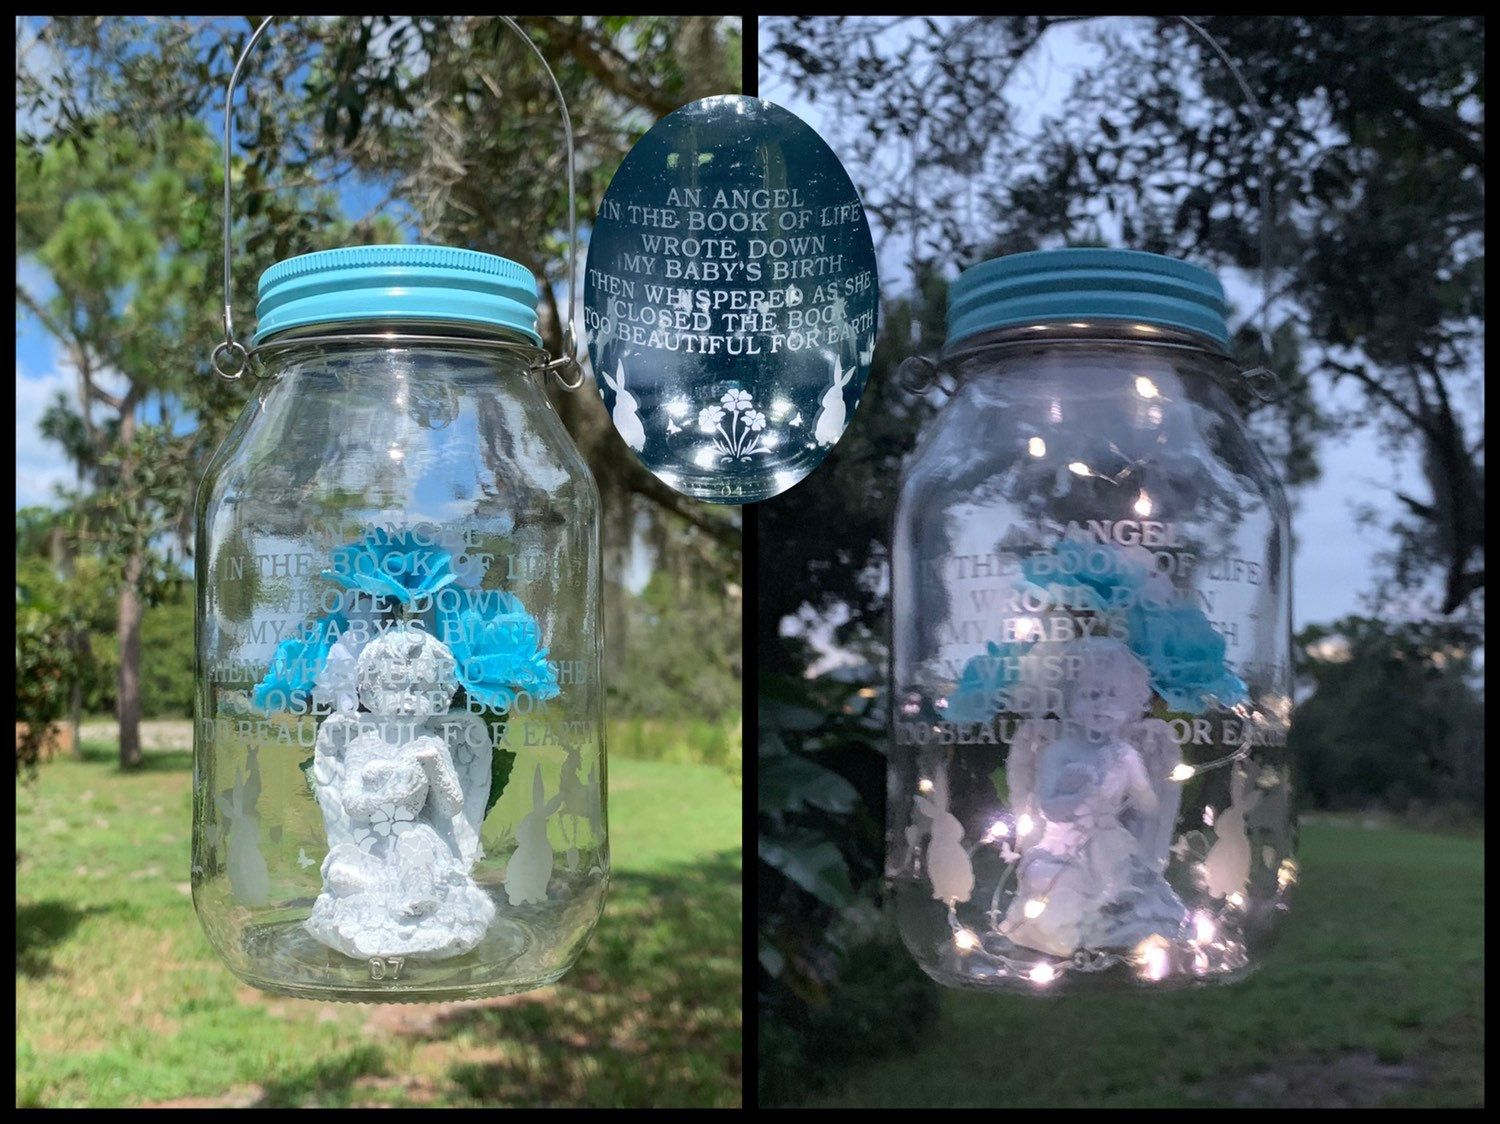 Grave Decoration For Loss Of Baby Boy Cemetery Decoration Etsy Gravesite Decorations Cemetery Decorations Grave Decorations